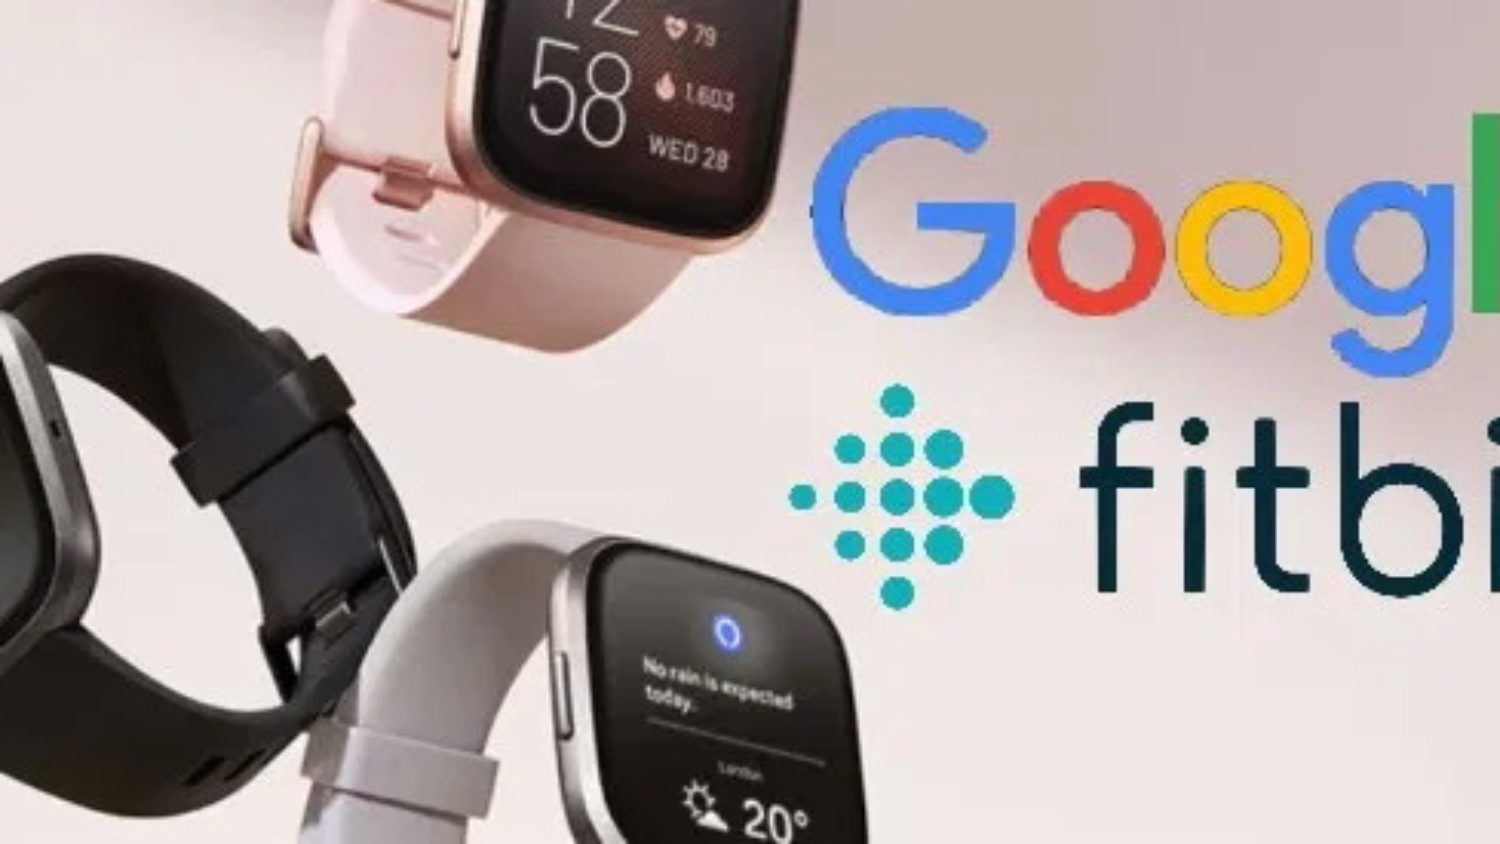 Behavioural Undertaking In Google's Proposed FitBit Deal Rejected By ACCC